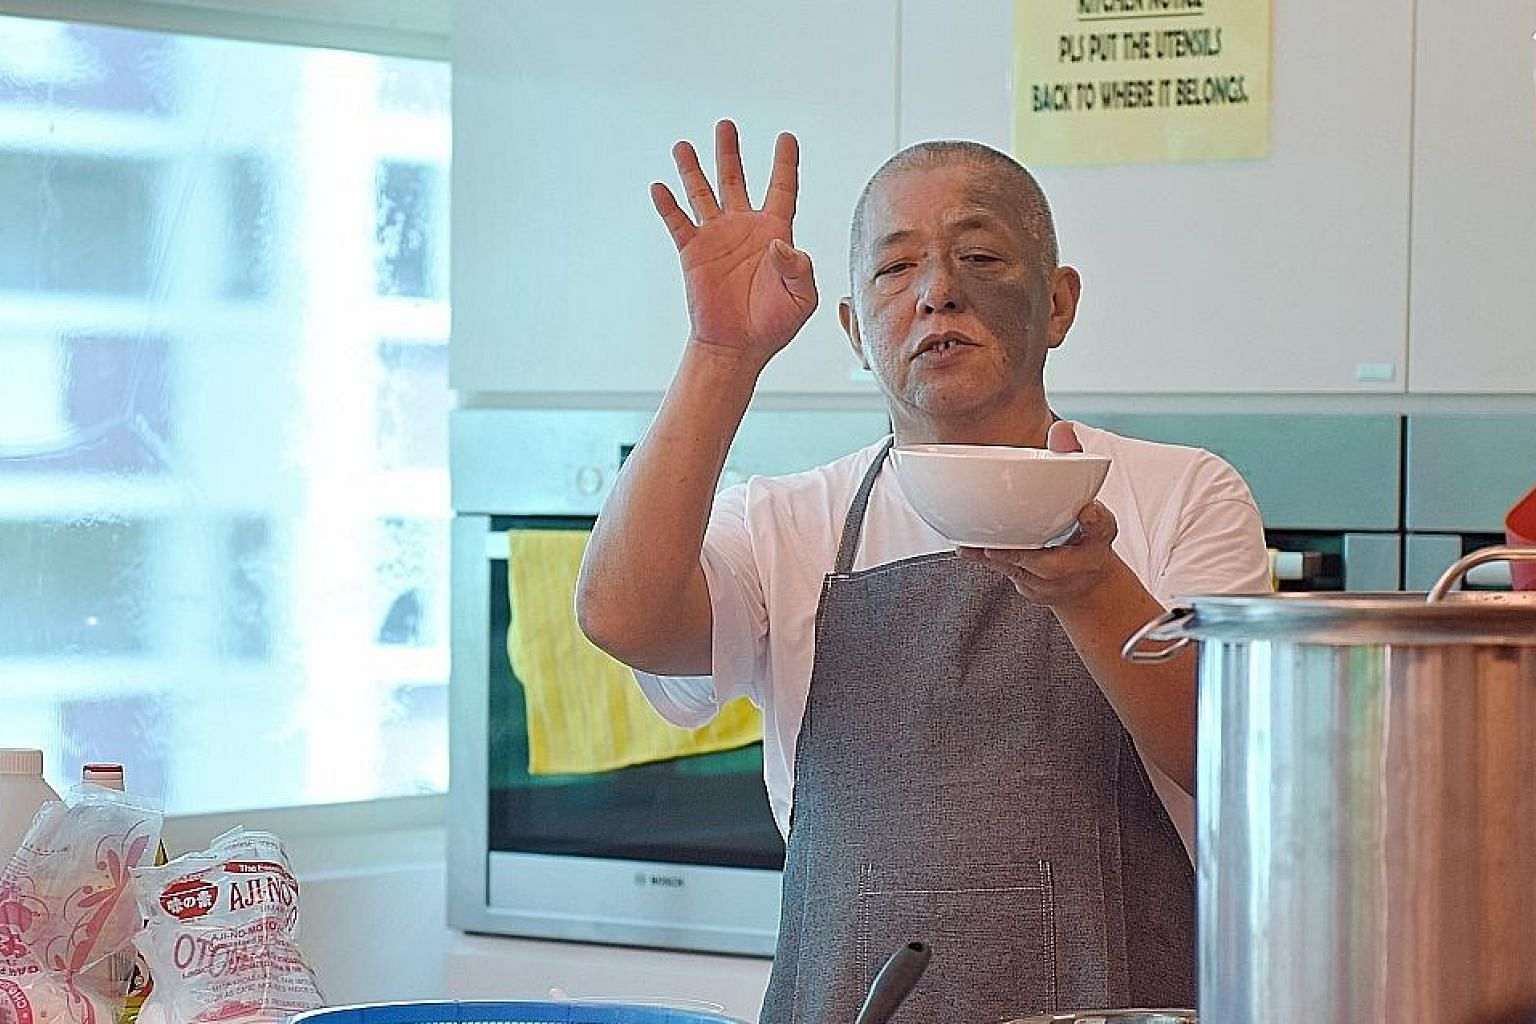 Veteran chicken rice hawker Neo Cheng Leong, 57, imparting his skills during a Hawker Fare Series cooking class yesterday.